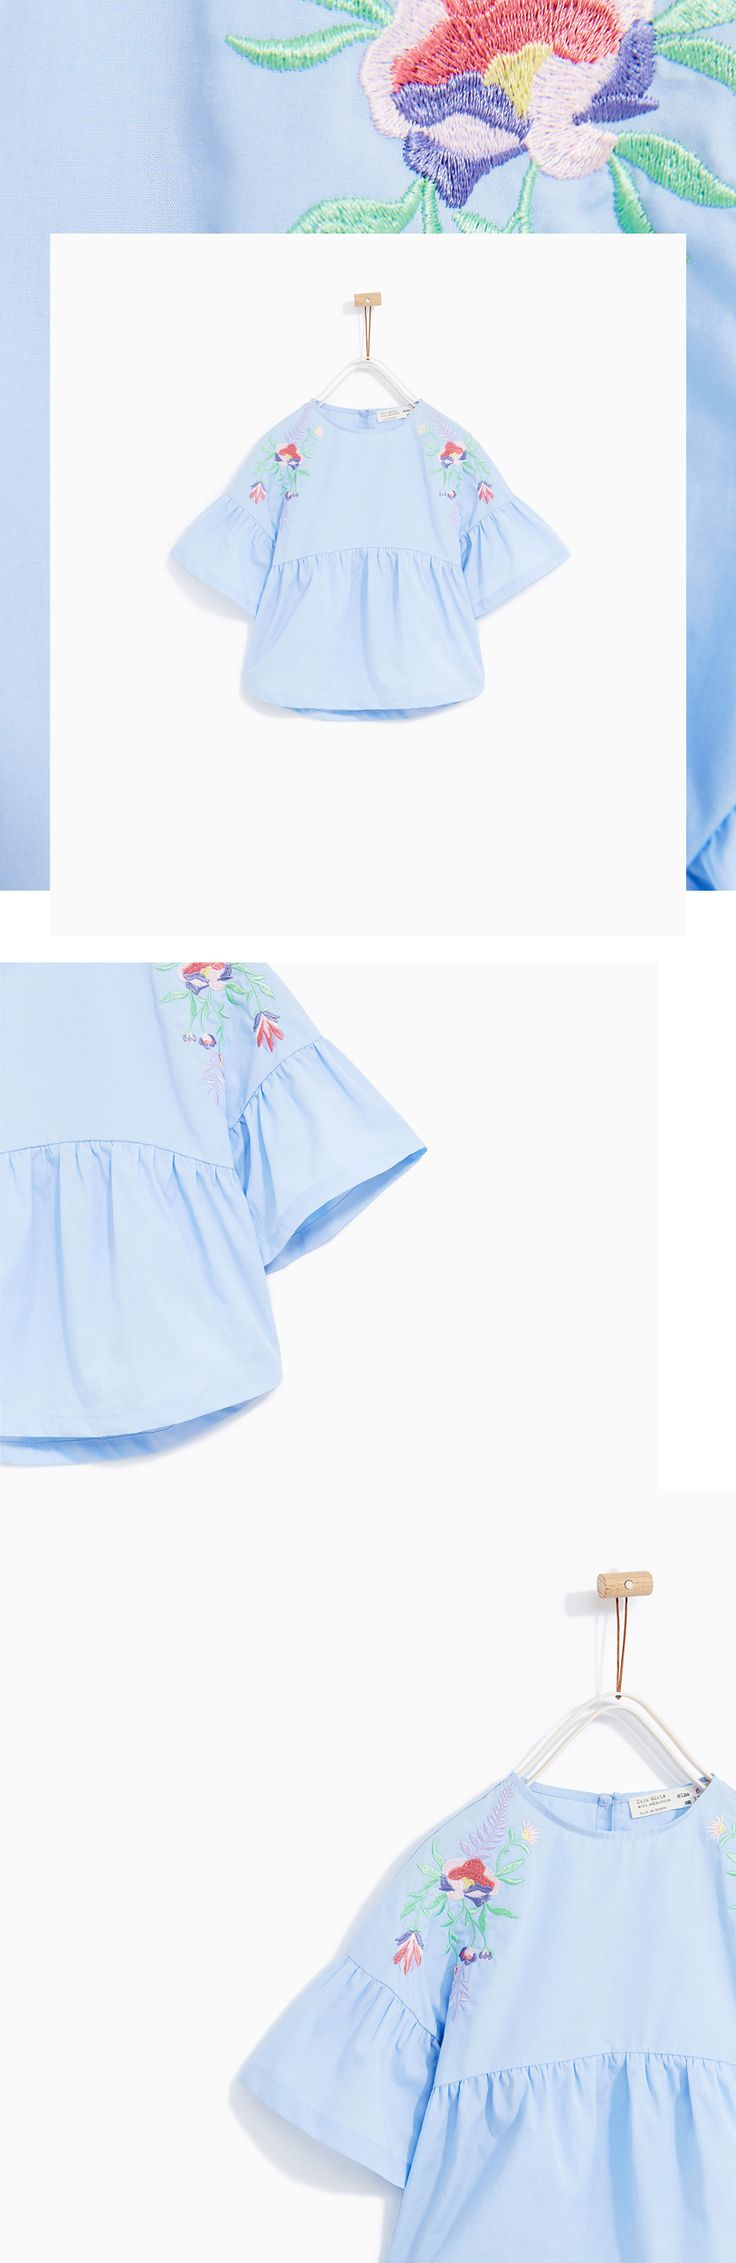 ZARA KIDS | Embroidered blouse, Soft Collection, S17 on Behance